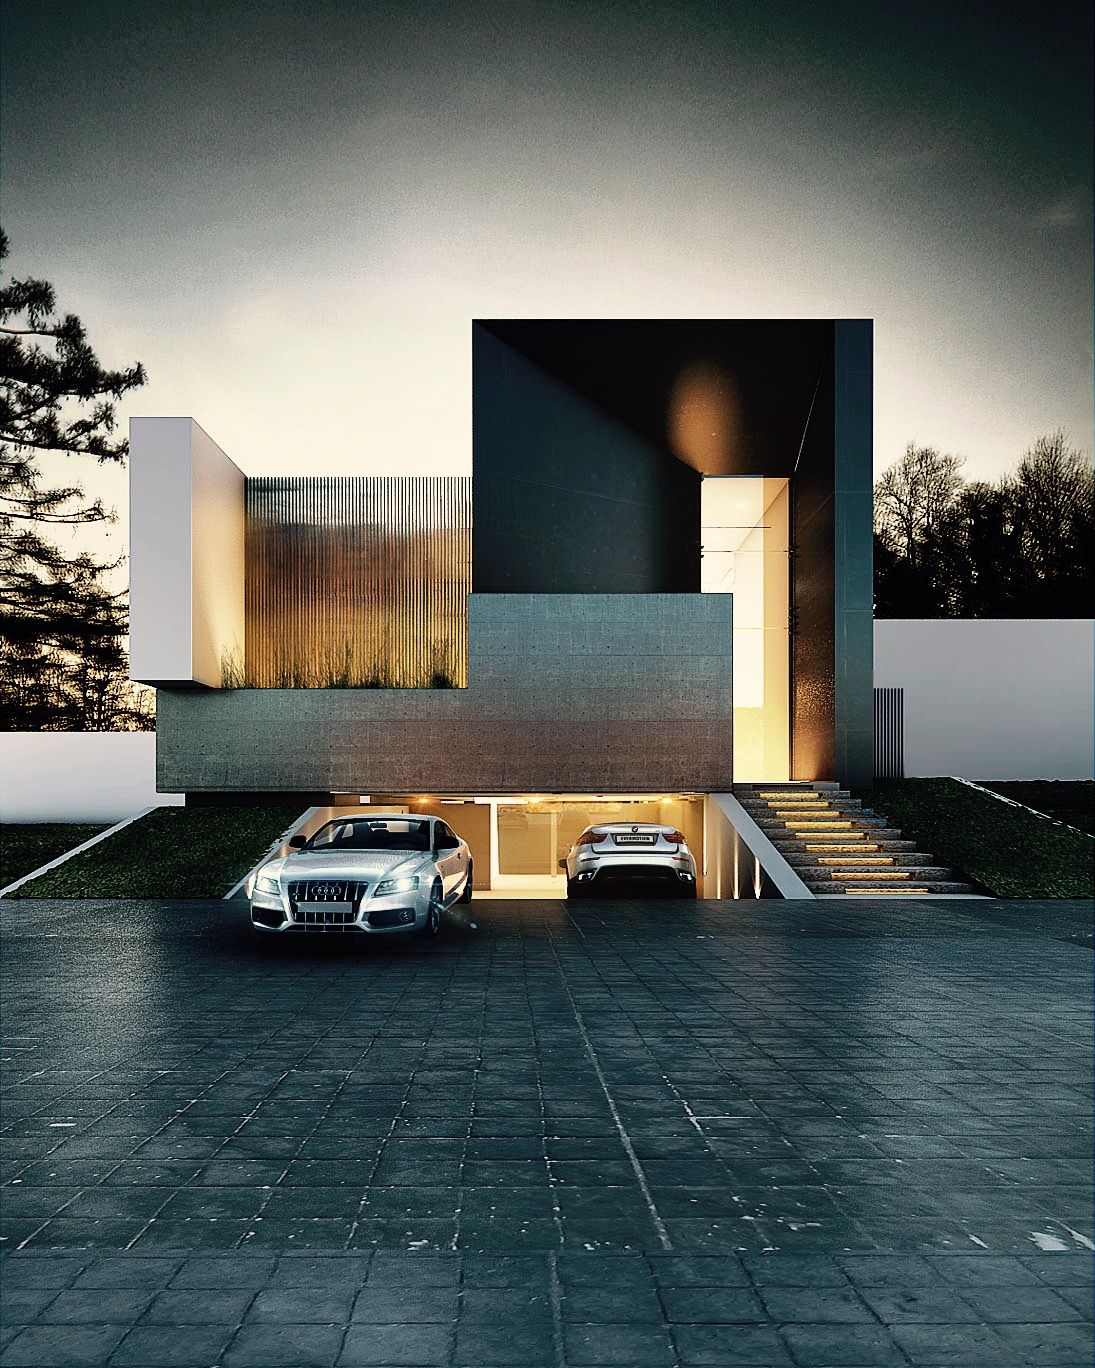 Garage Design Architecture: TERRA HOUSE #ARCHITECTURE #FACADES #PROJECT